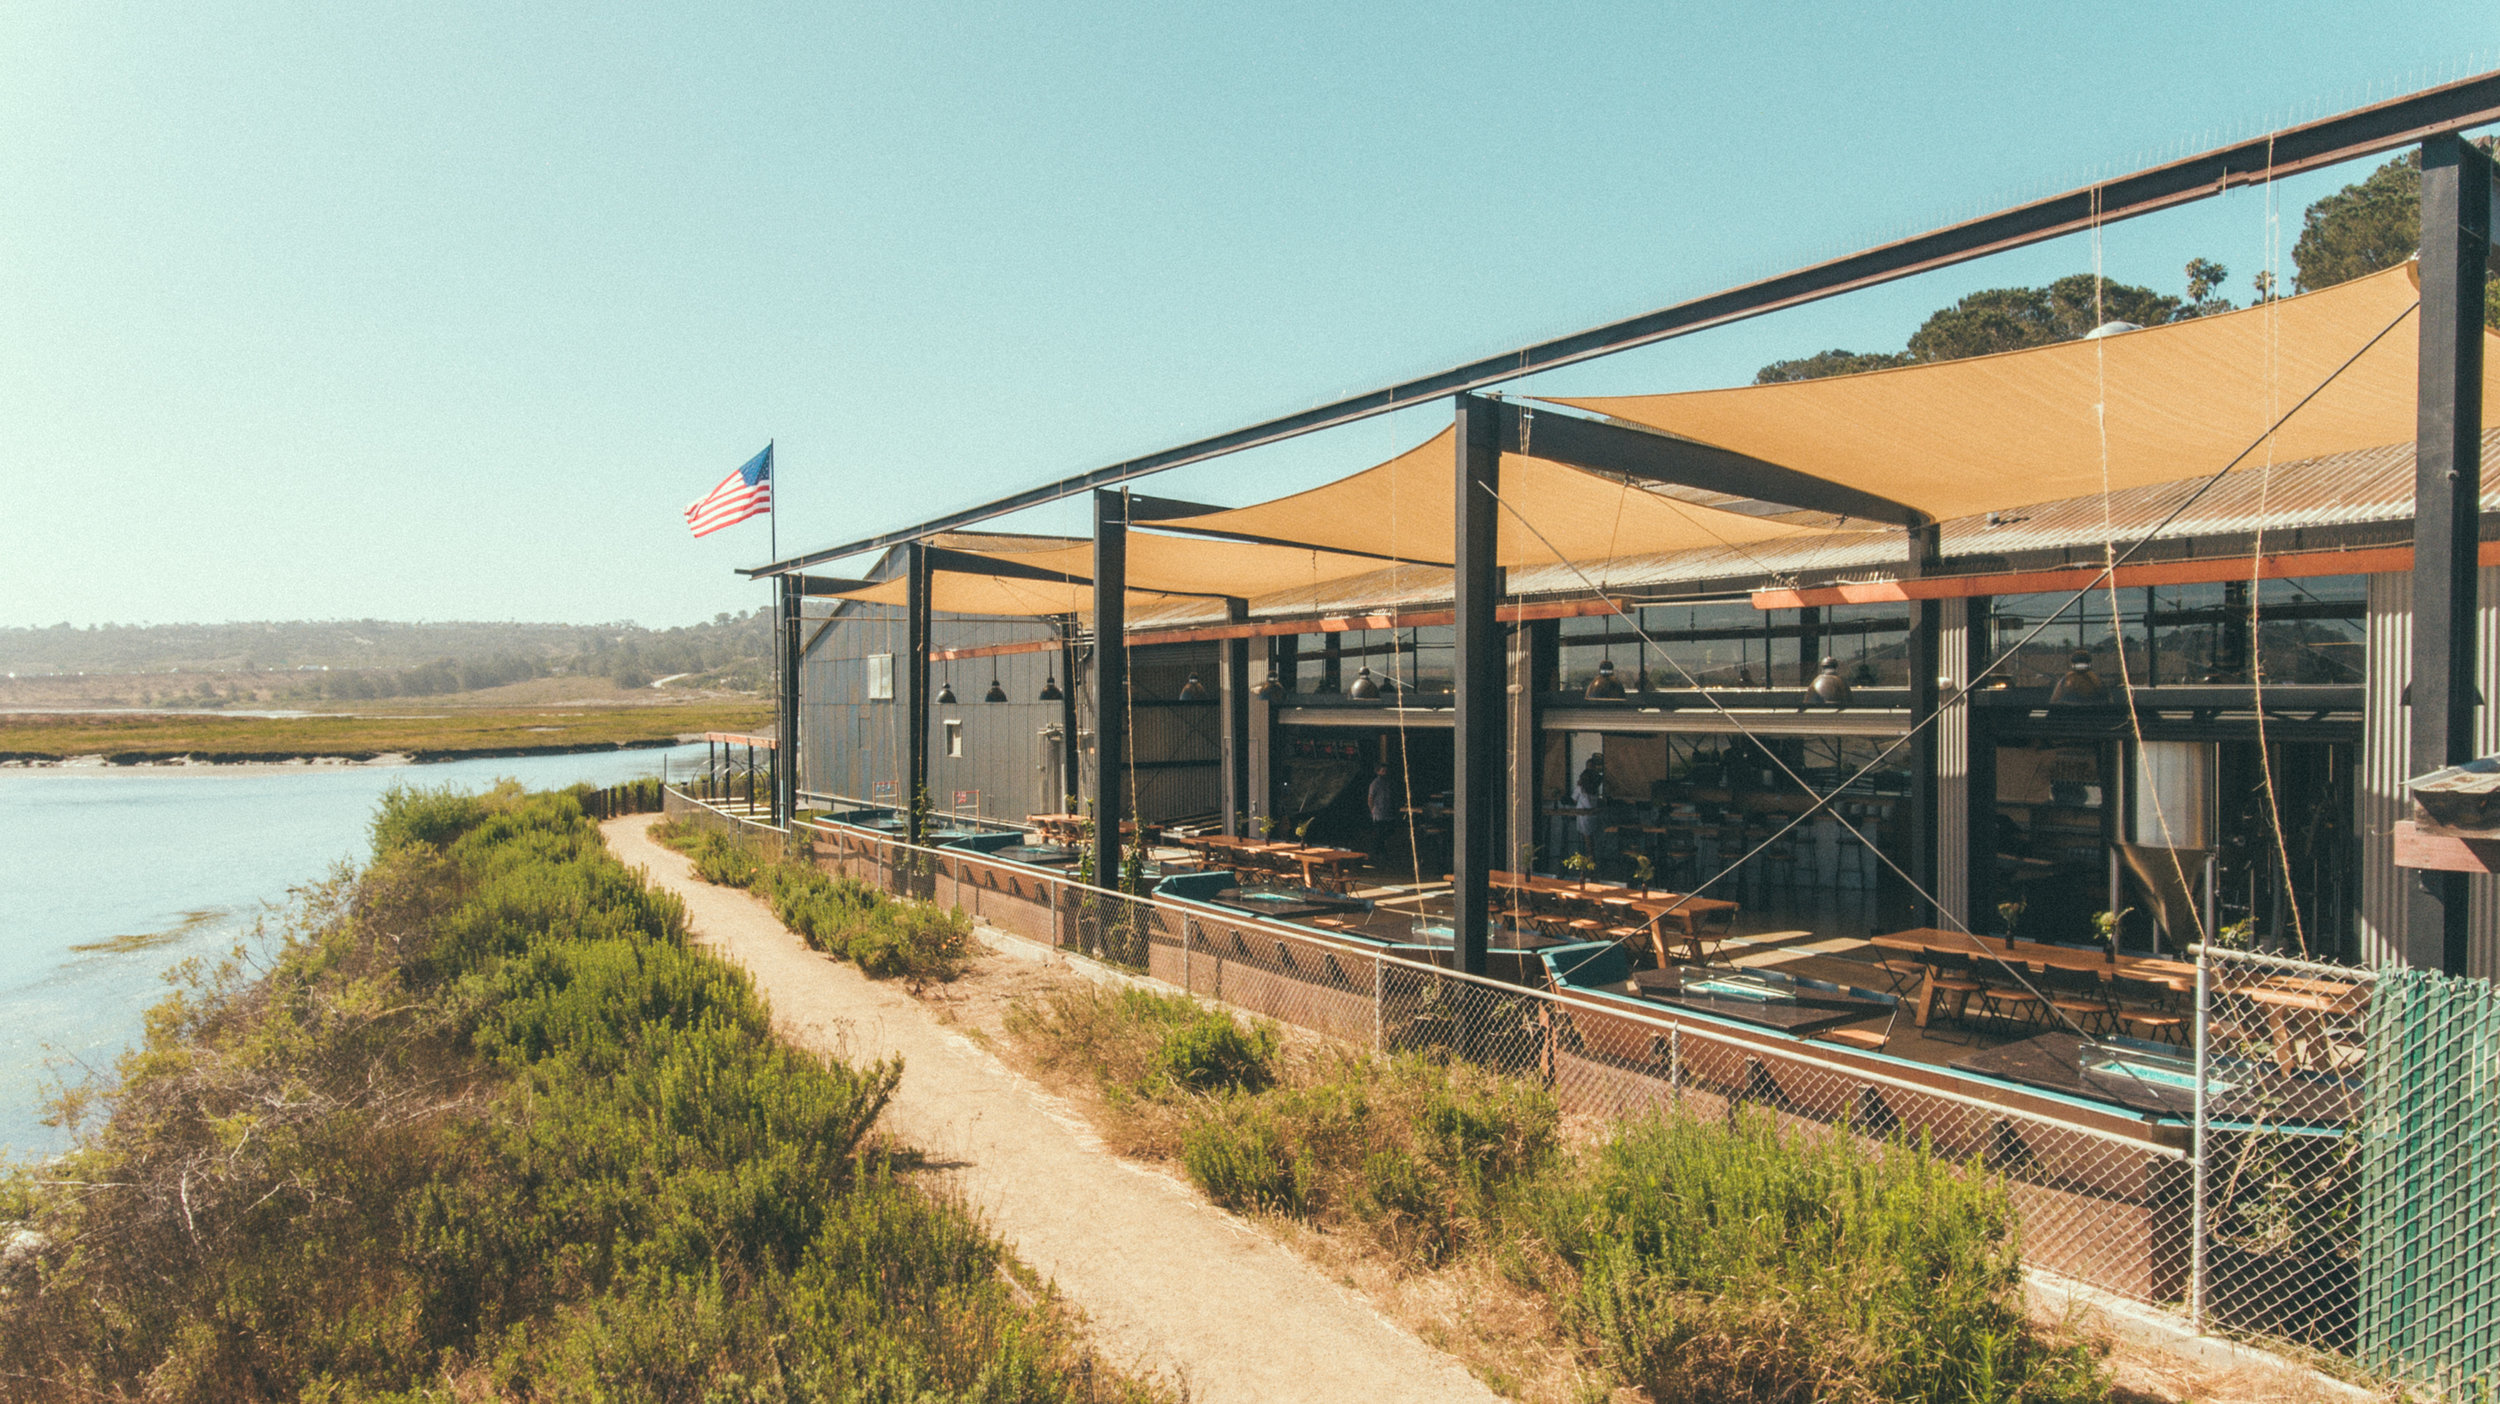 Viewpoint Brewing Company - Outdoor, waterfront brewery right on the San Dieguito Lagoon